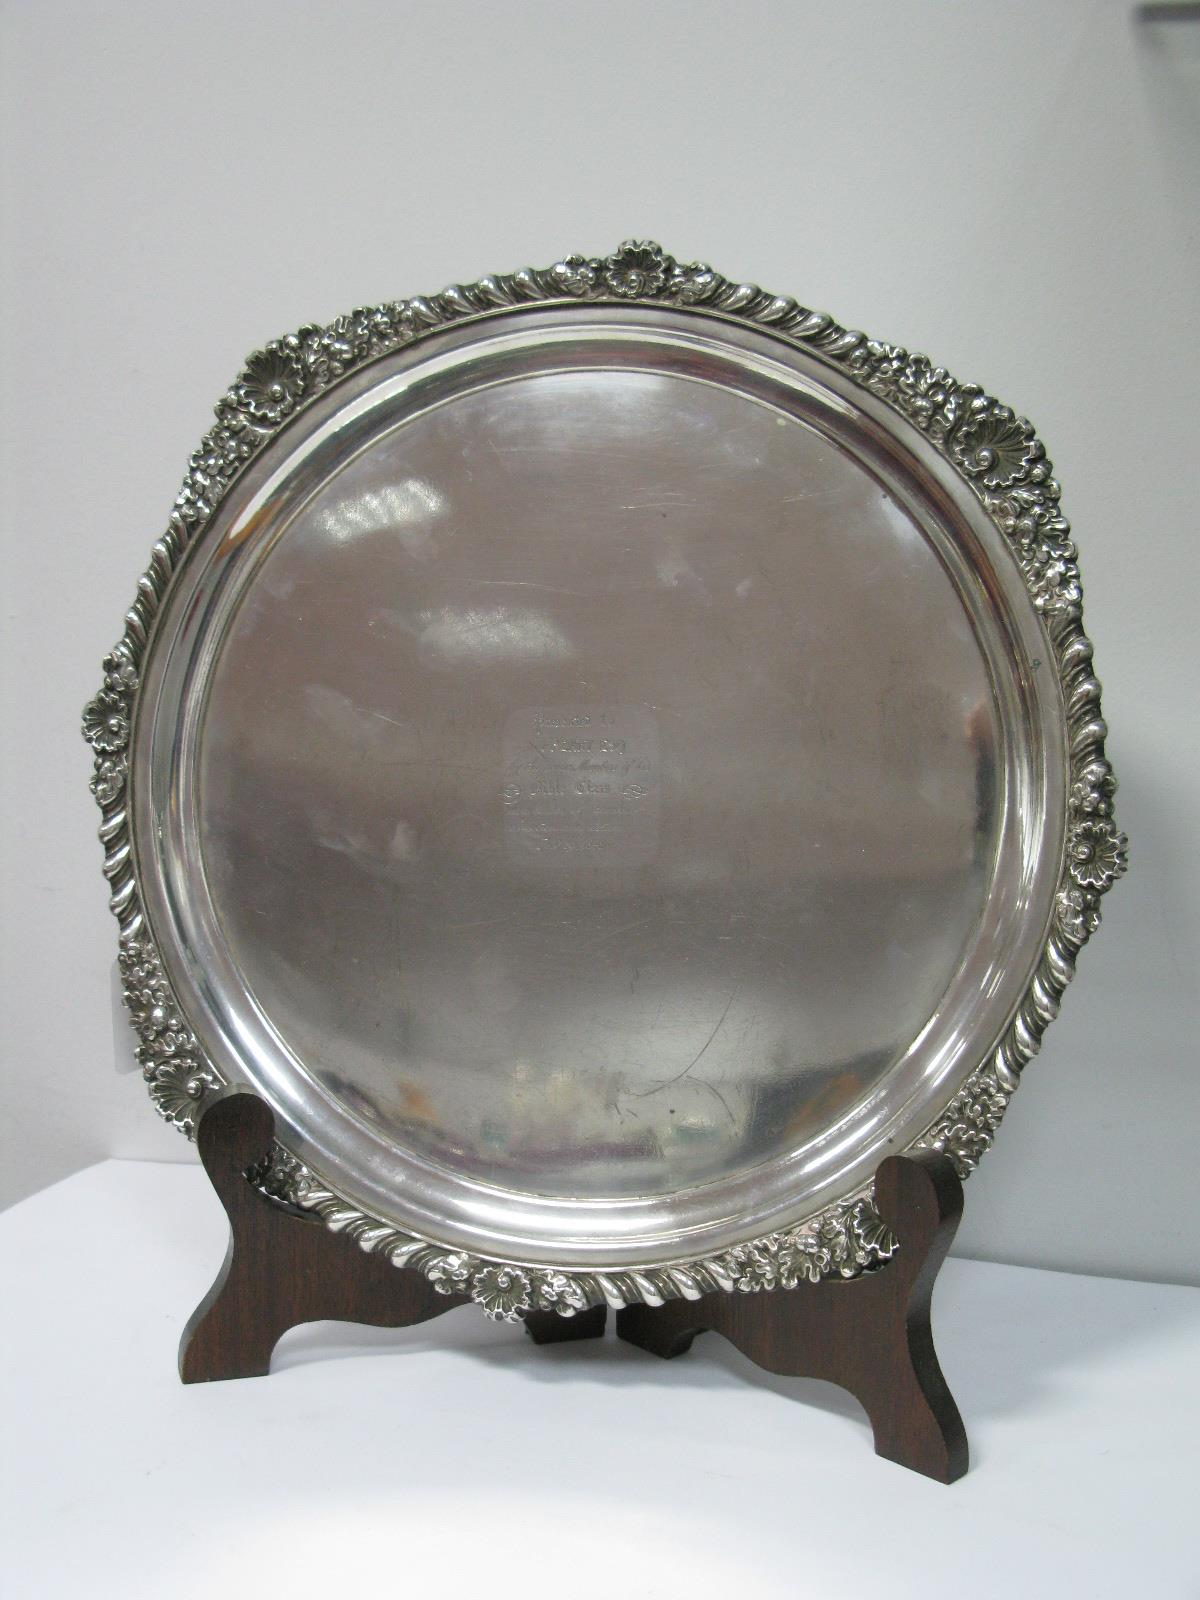 Lot 342 - A XIX Century Old Sheffield Plate Salver, of plain design with gadrooned edge, inscribed ""